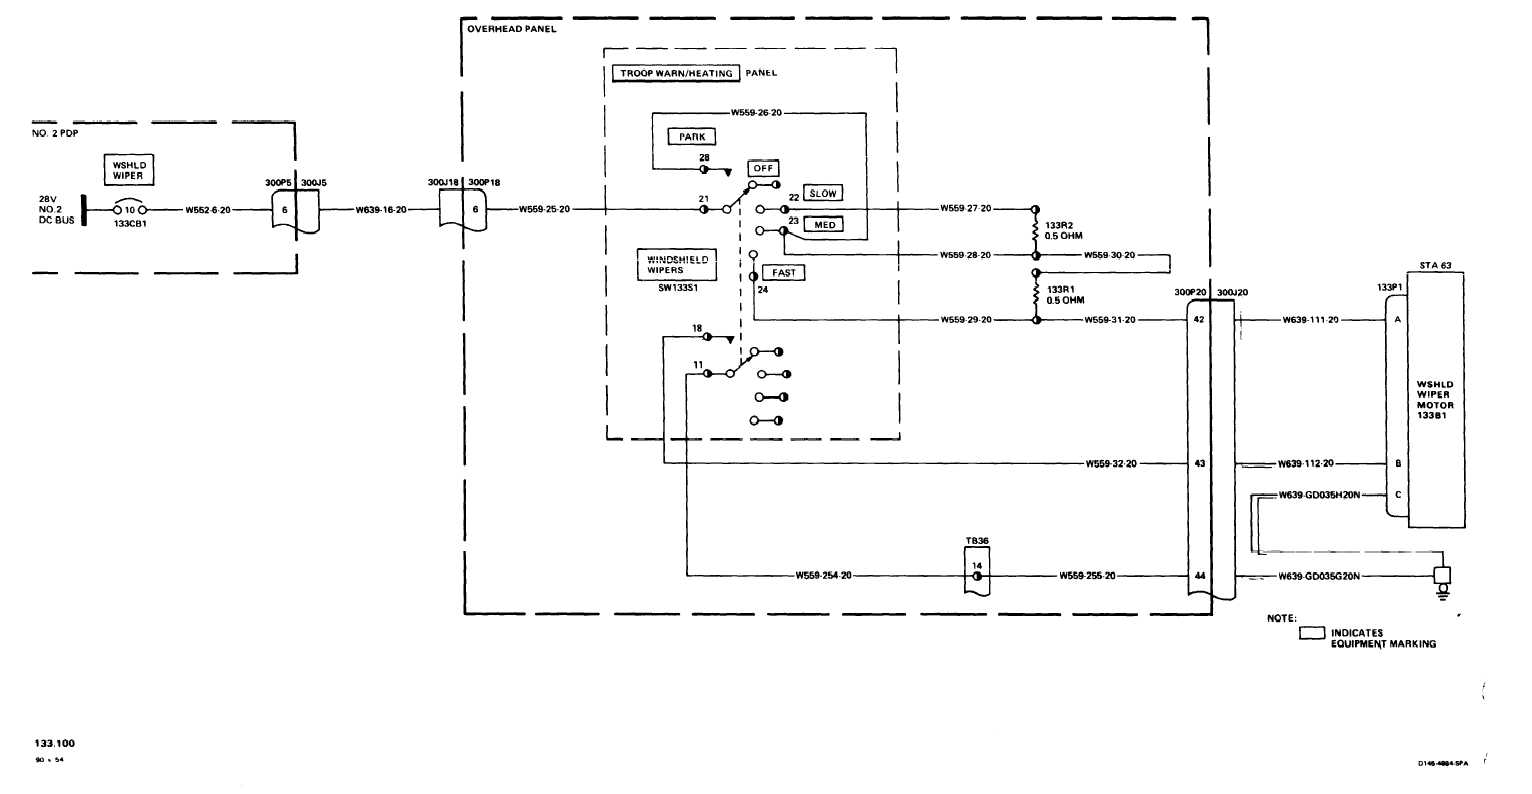 TM 55 1520 240 T 3_590_1 wiper wiring diagram f100 wiper motor wiring diagram \u2022 wiring 1999 ford explorer rear wiper wiring diagram at creativeand.co